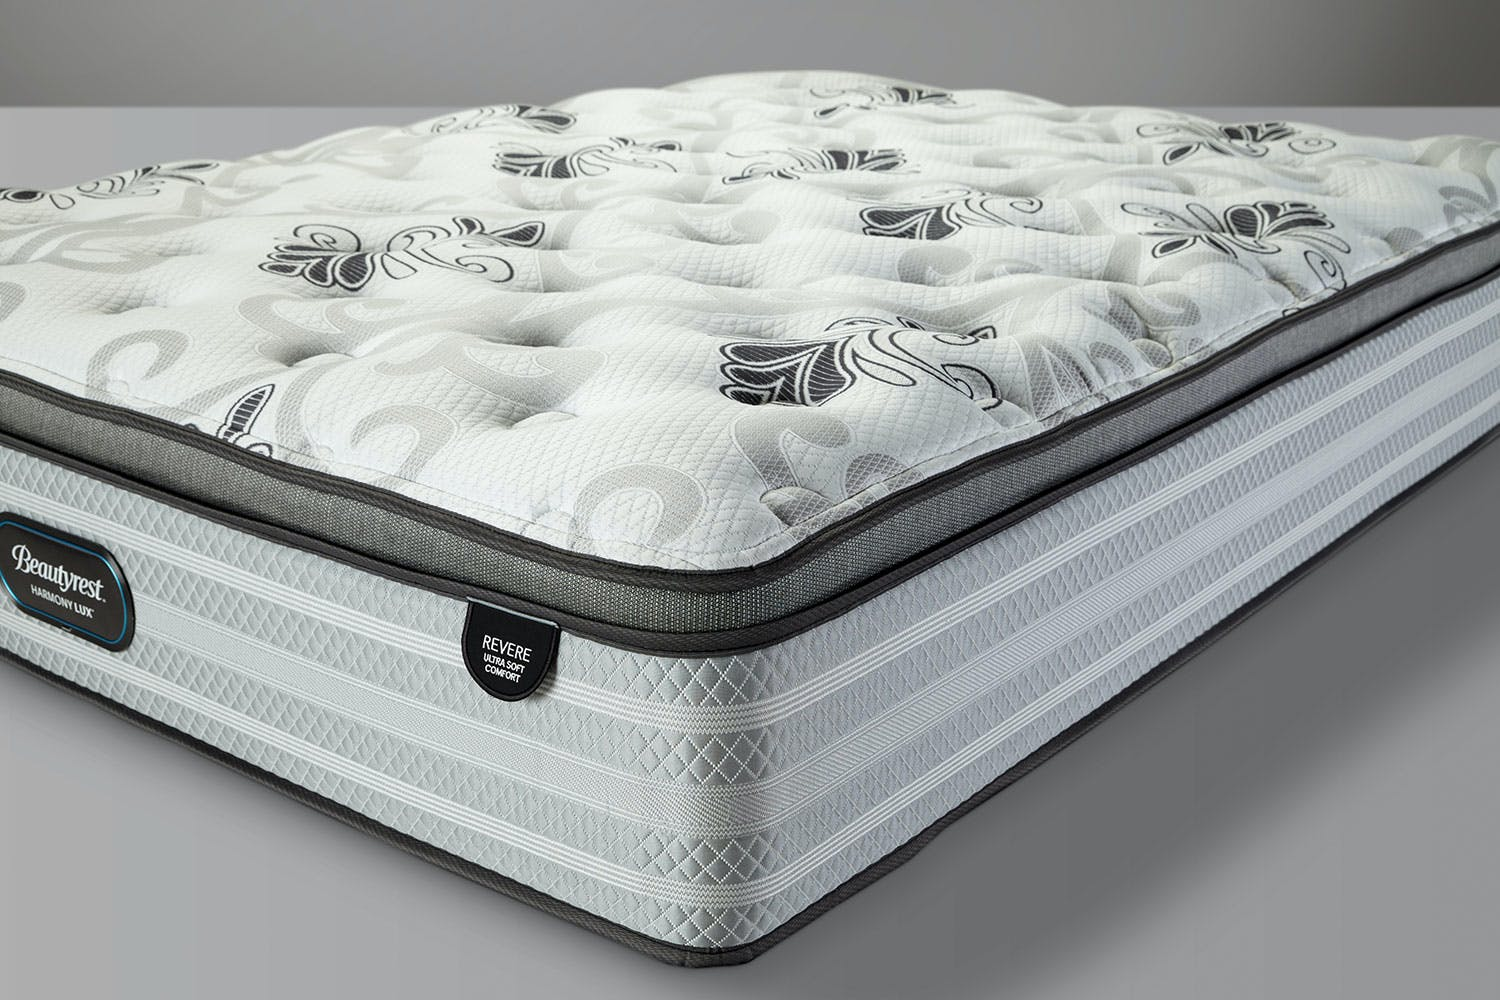 Revere Extra Soft Queen Mattress by Beautyrest